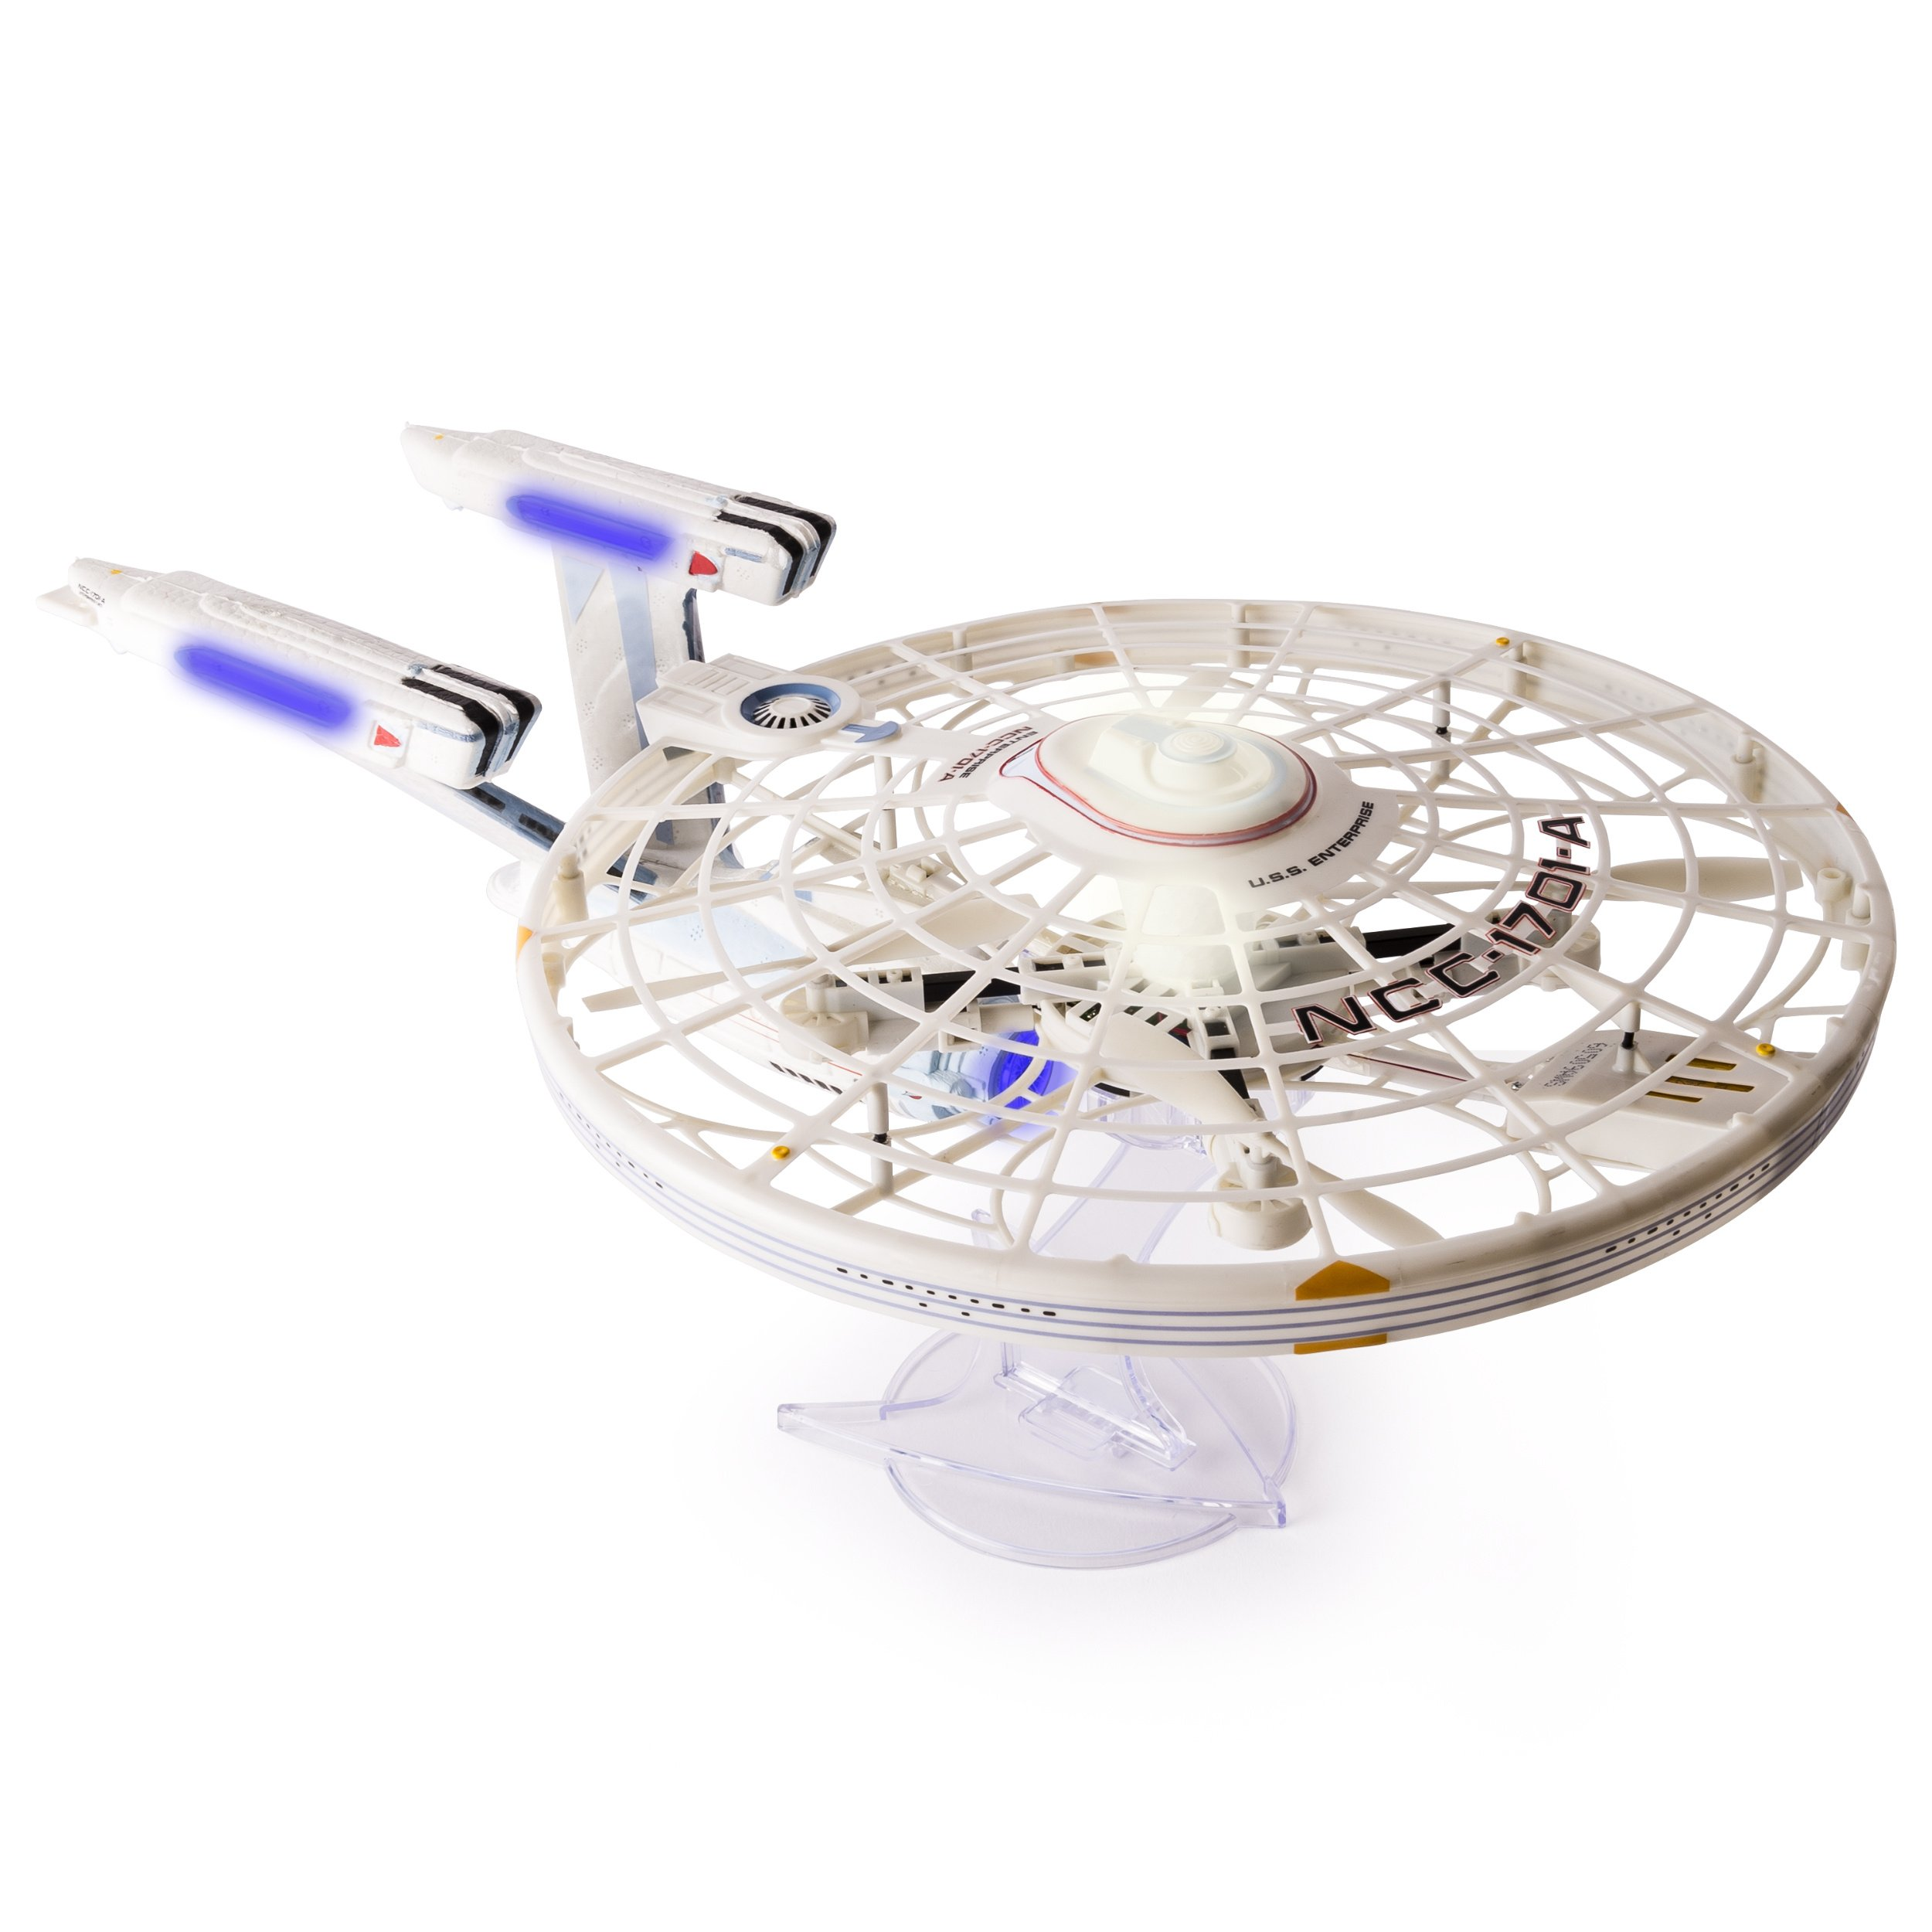 Air Hogs, Star Trek U.S.S Enterprise NCC-1701-A, Remote Control Drone with Lights and Sounds, 2.4 GHZ, 4 Channel by Air Hogs (Image #5)